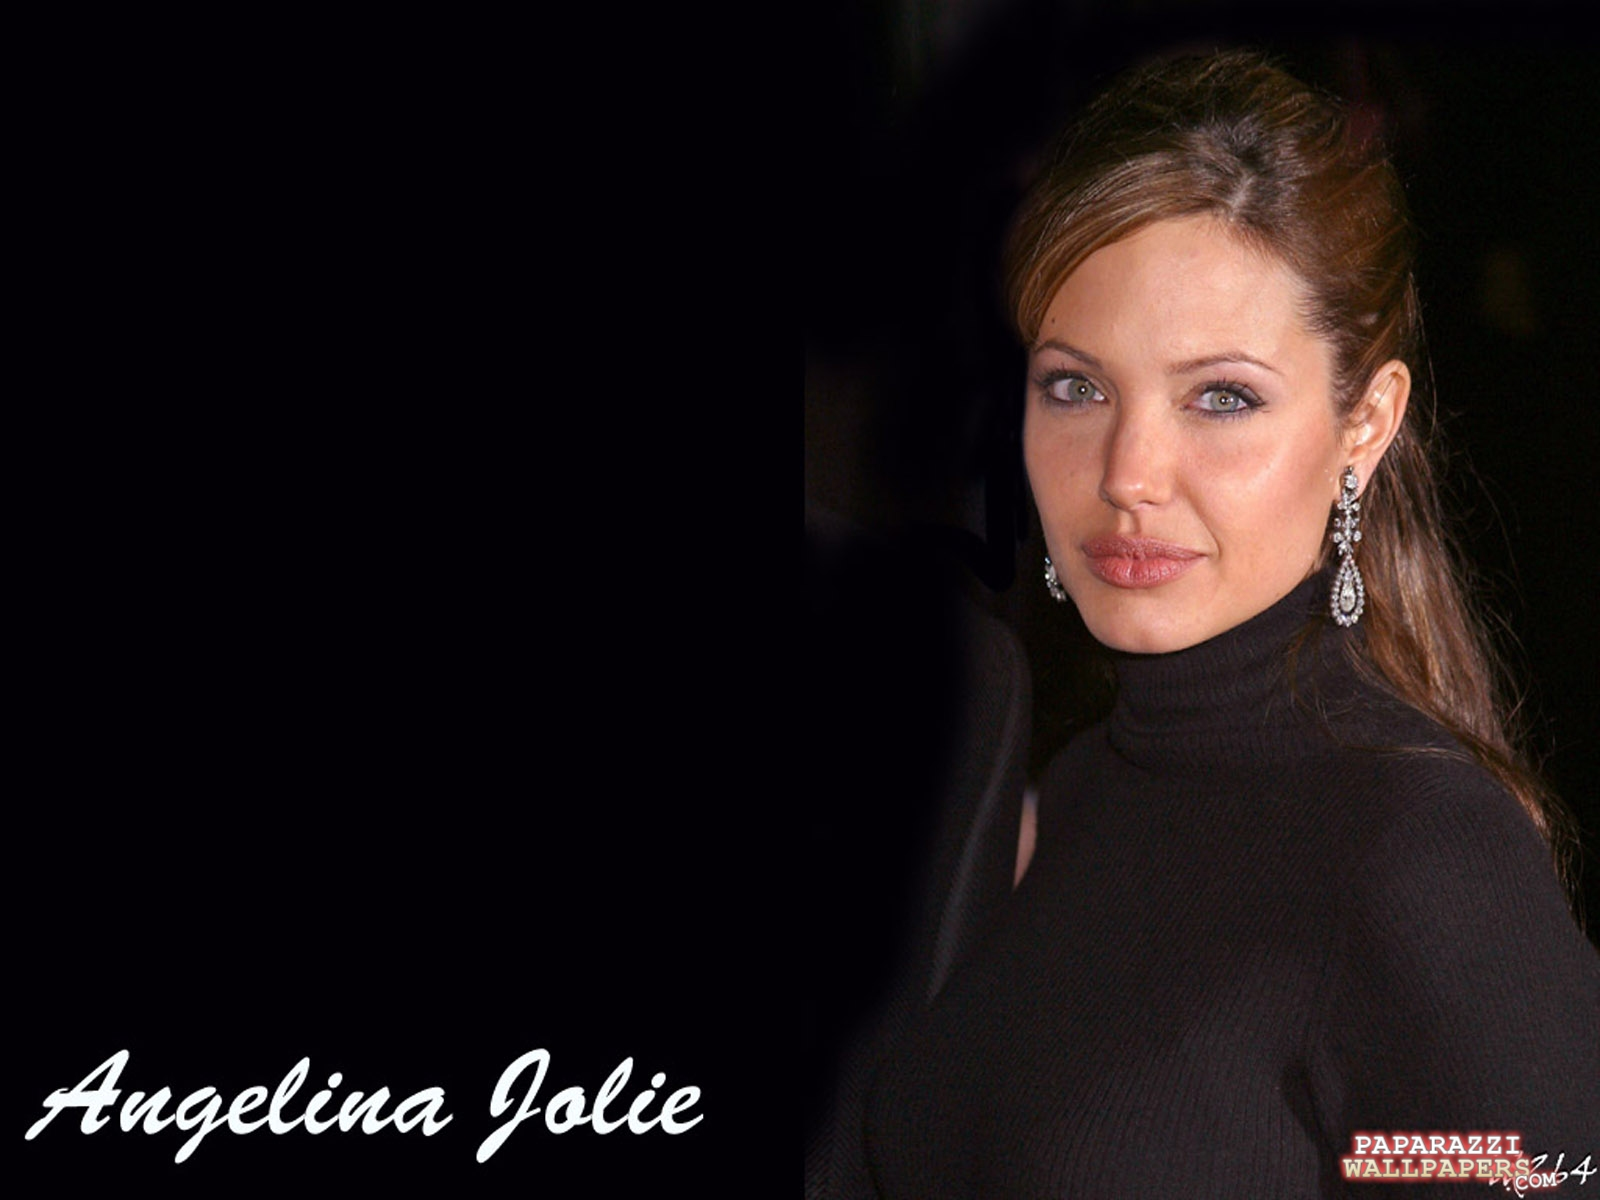 angelina jolie wallpapers 008